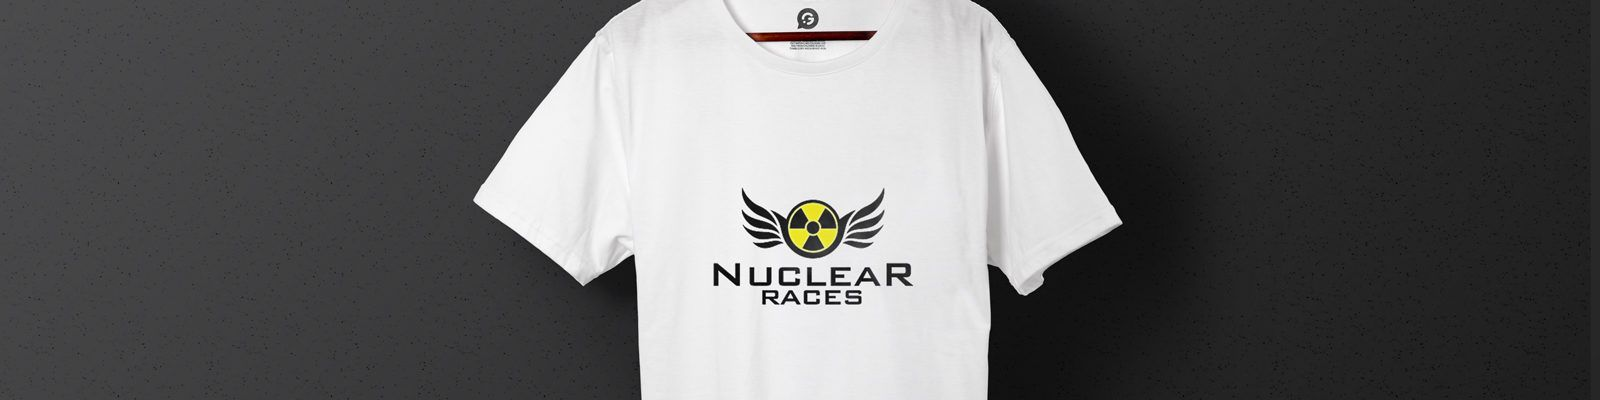 Durable Printed T-Shirts for Nuclear Races - Header Image